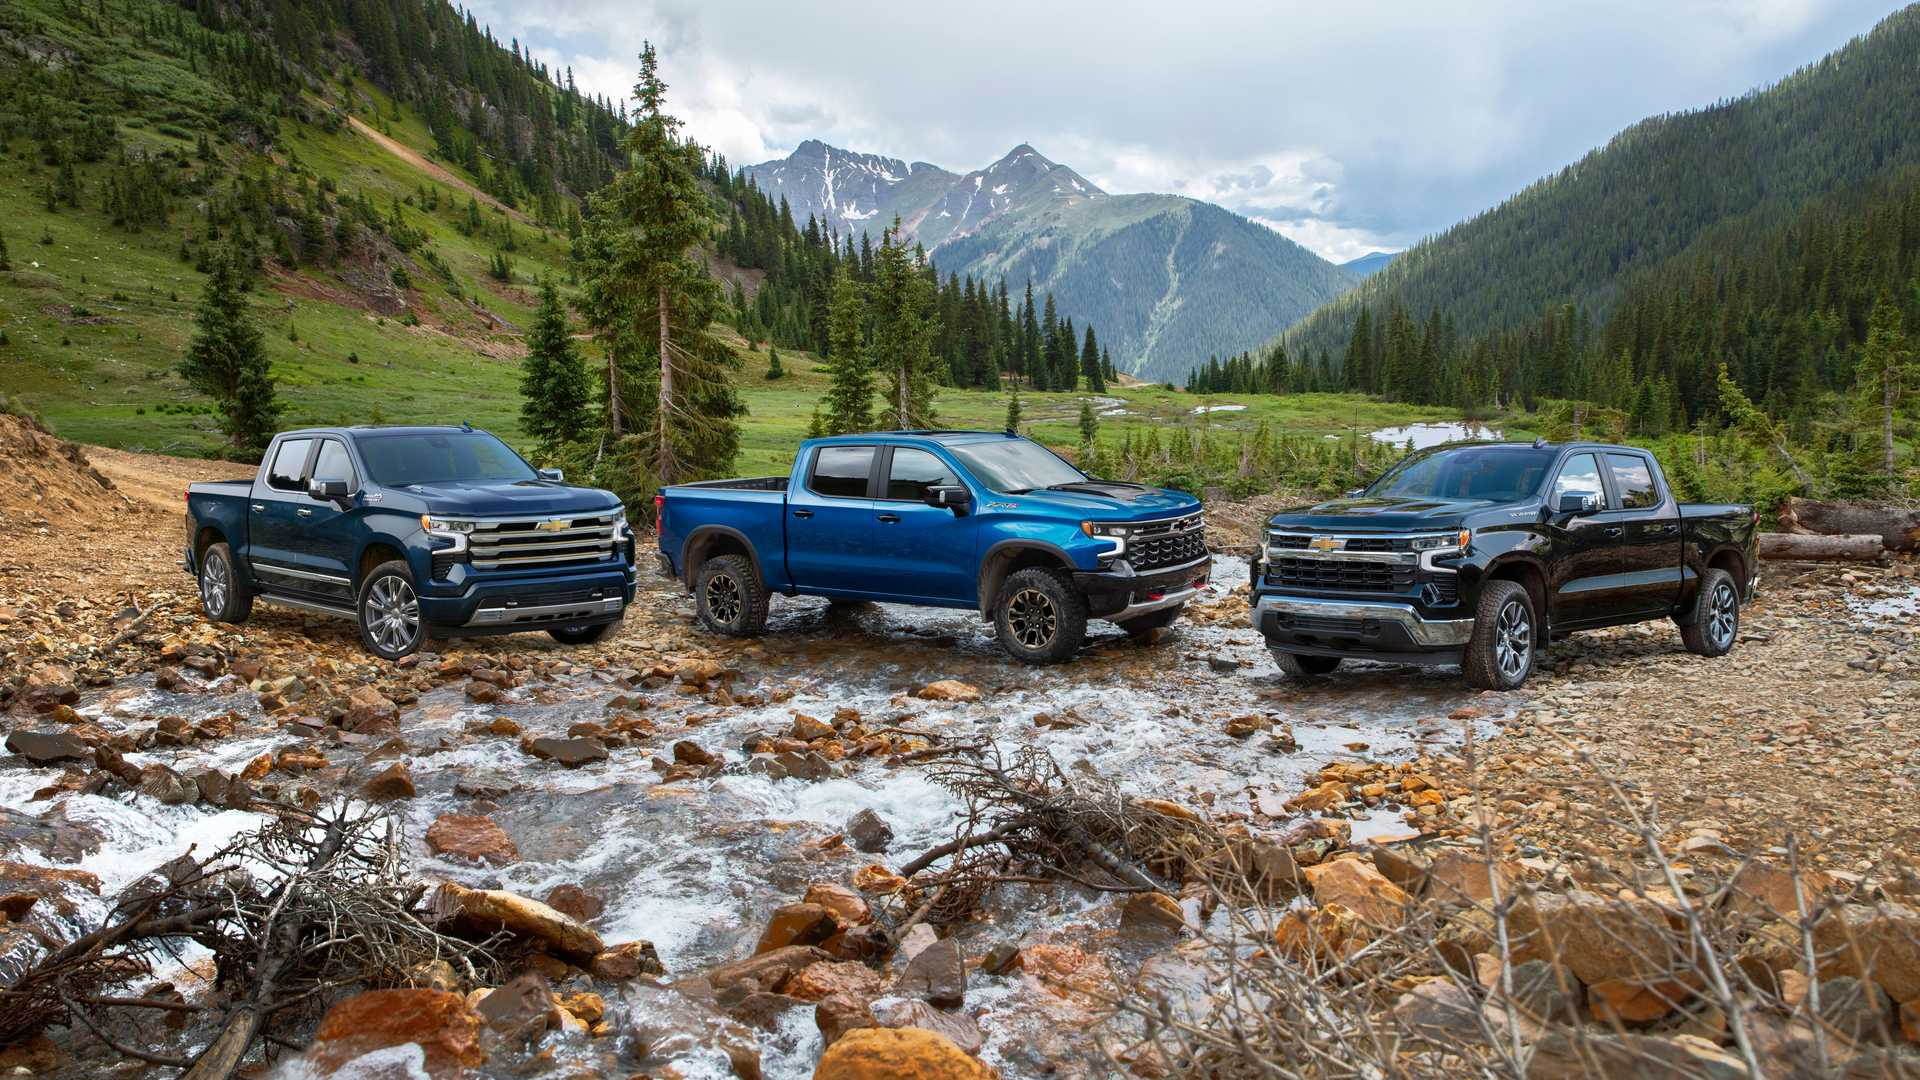 Back In The Game: The 2022 Silverado Arrives With Updates And A Raptor Fighter (Finally)